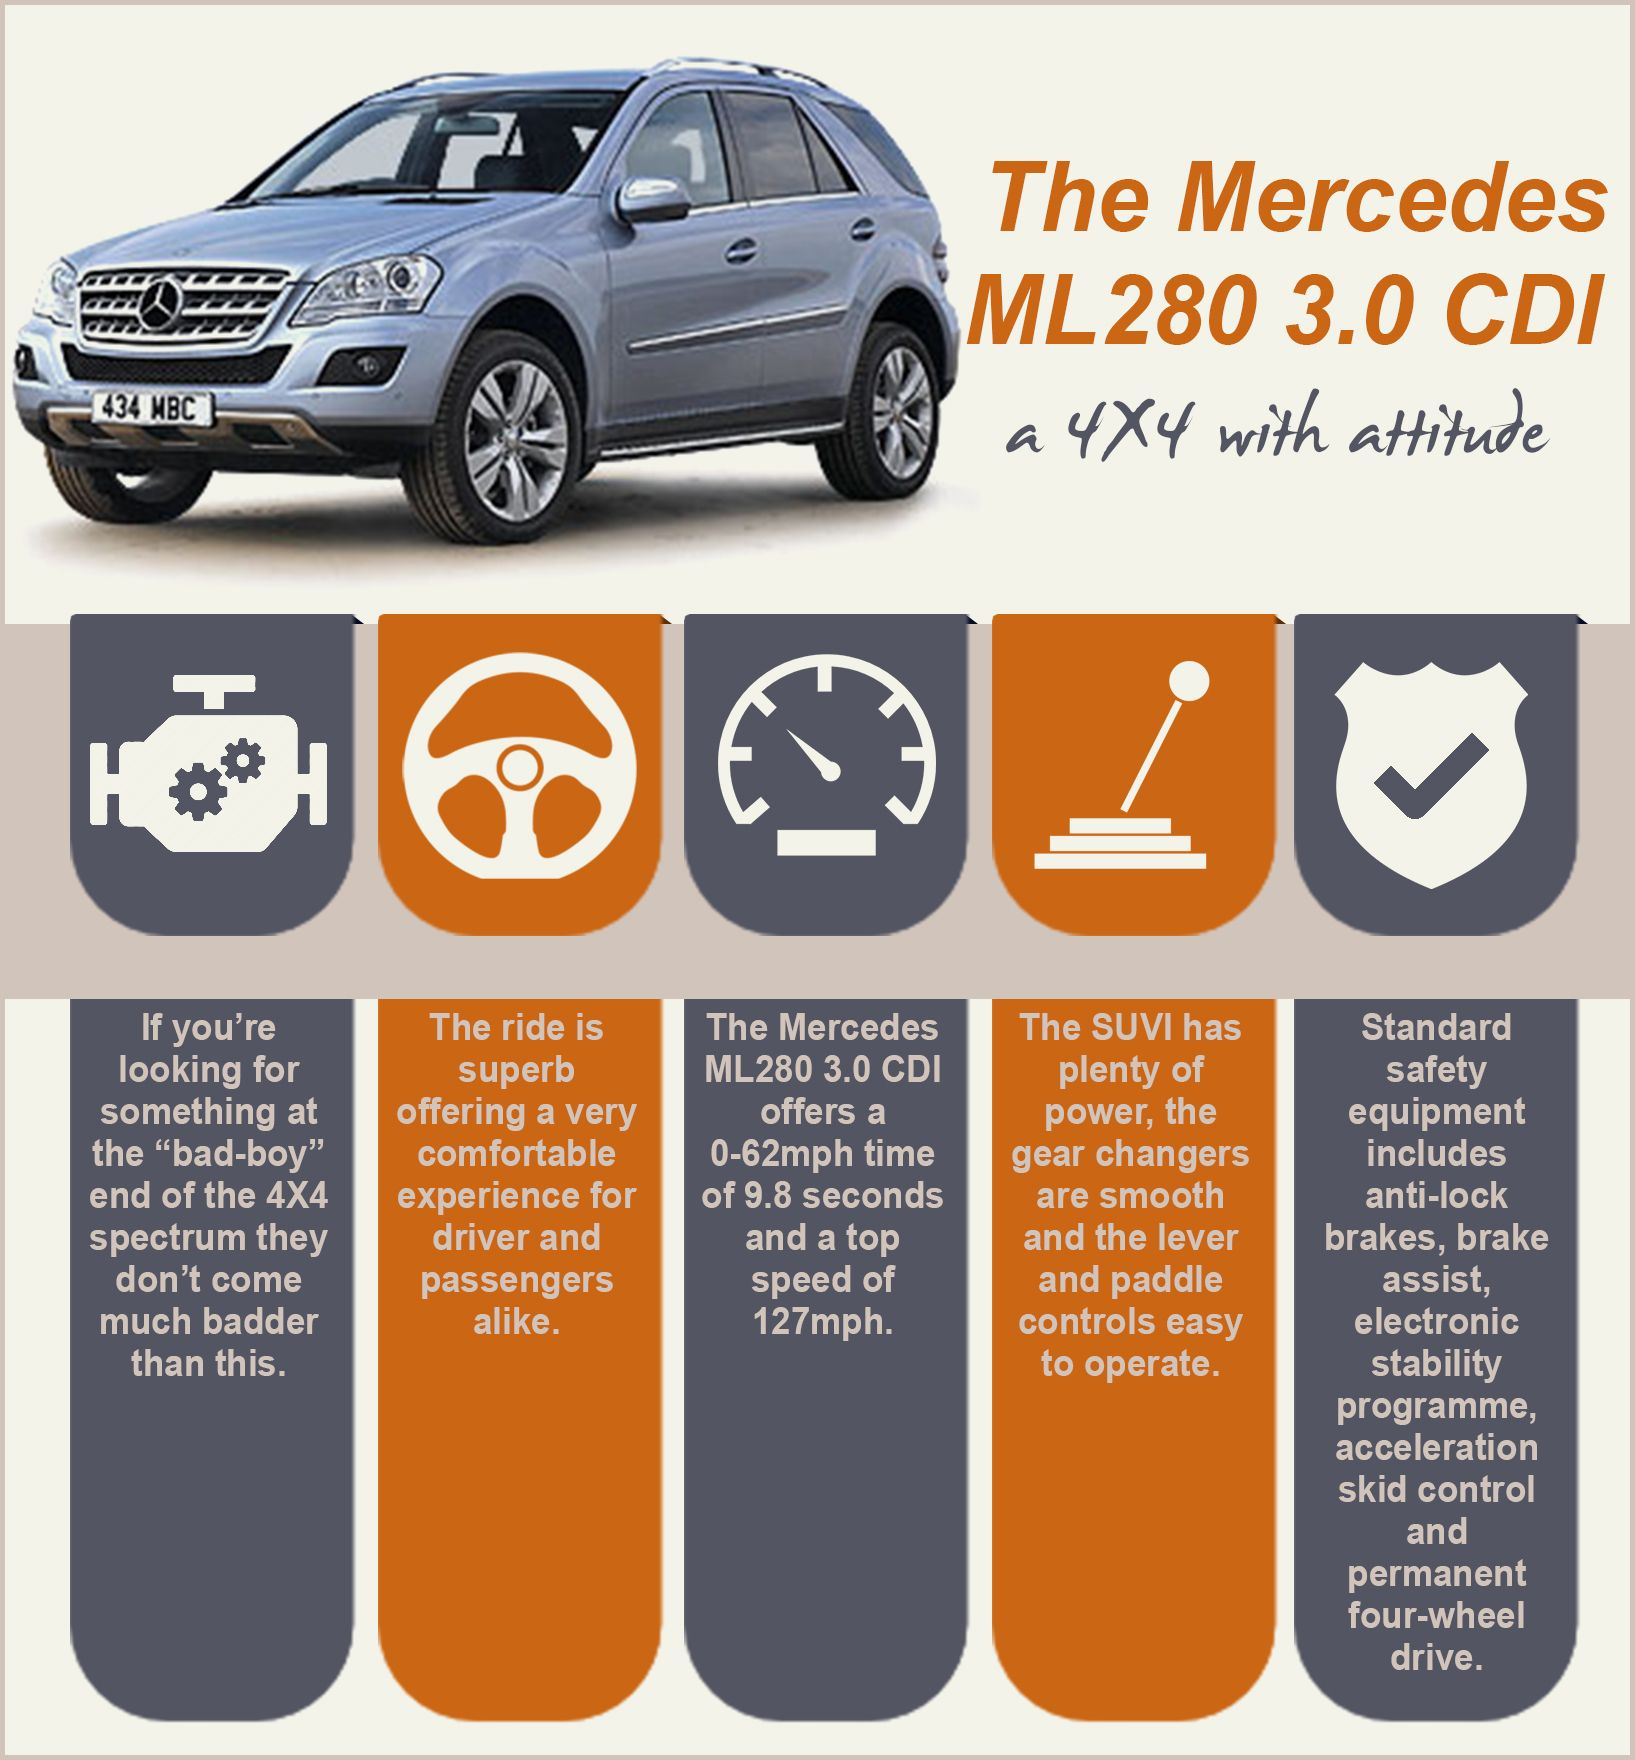 The Mercedes ML280 3.0 CDI